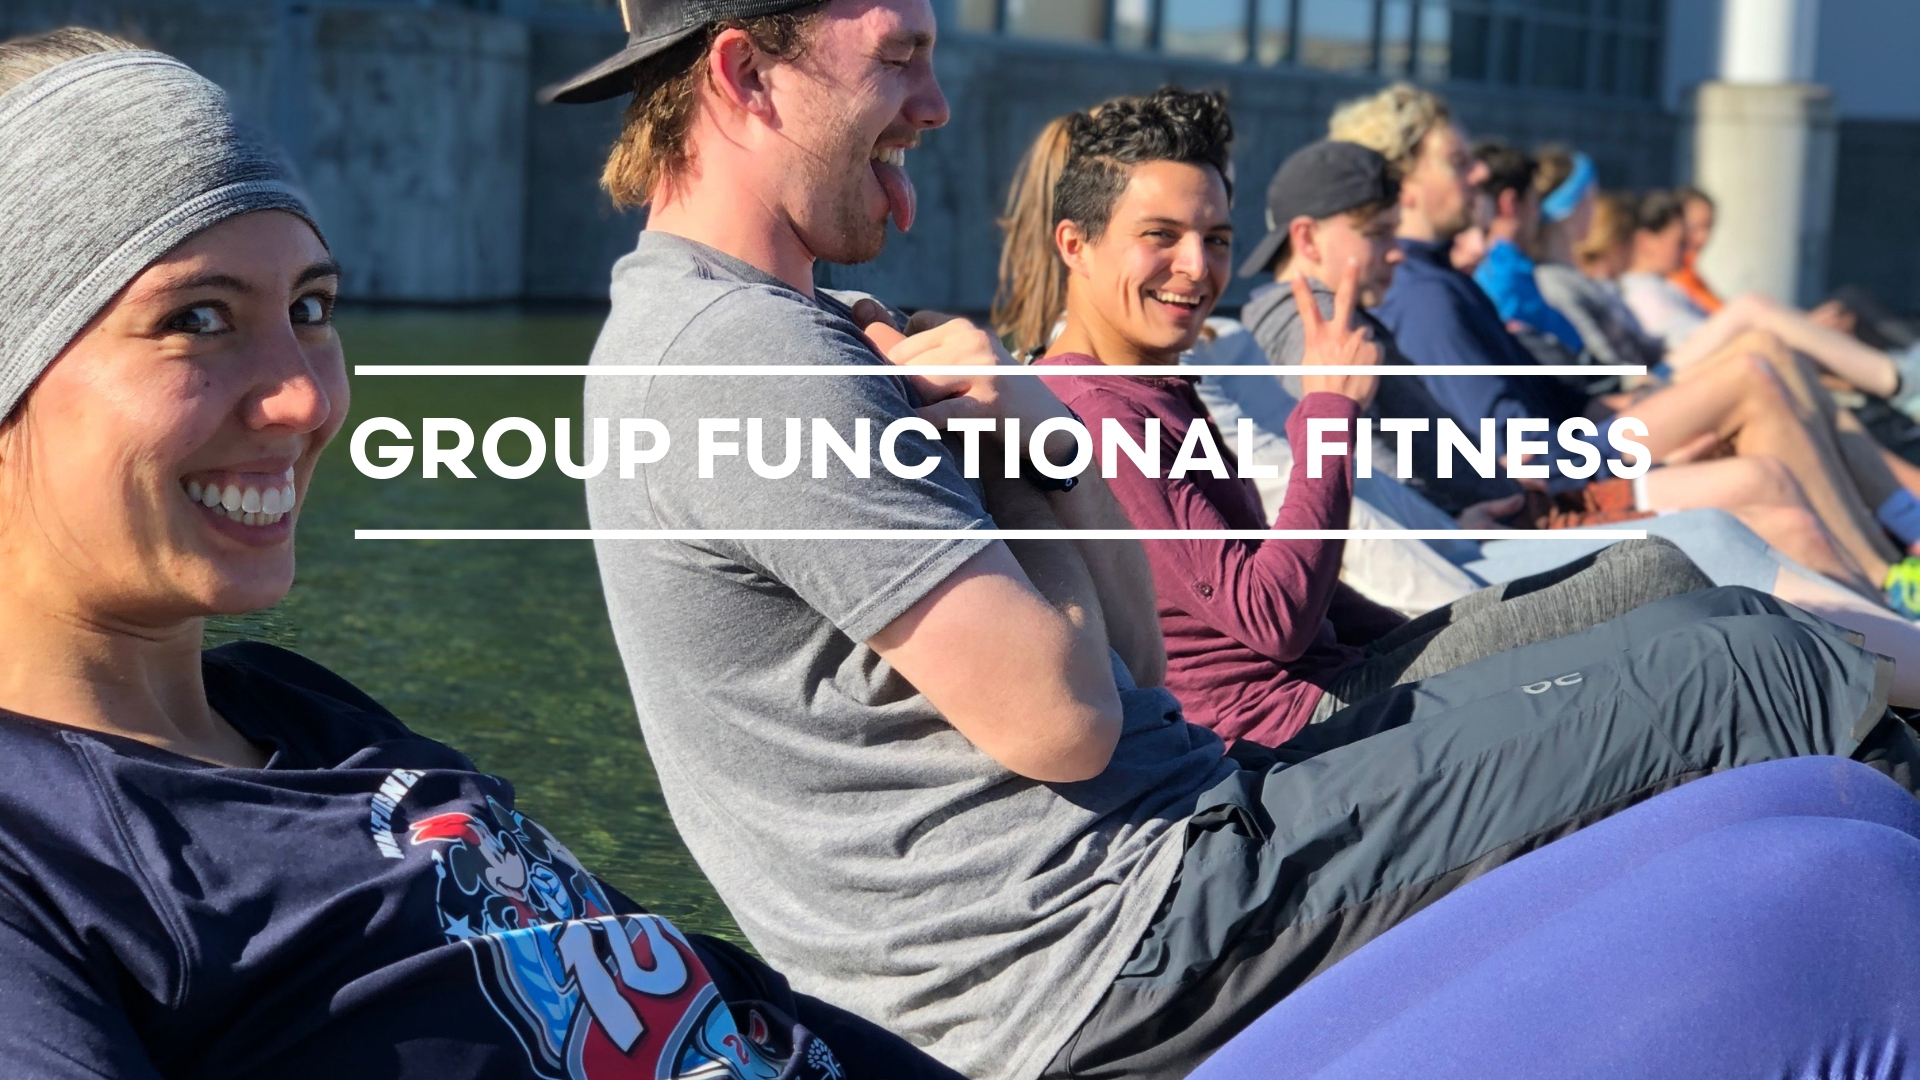 Our Functional Fitness Bootcamp sessions around Portland, Oregon are designed to be all-inclusive in a supportive environment. All workouts are based on time rather than repetitions, with all exercises being modifiable to suit your needs. We mix it up, using minimal equipment and nature as our gym. Try it out for free for your first time, and #GetAfterIt with us!